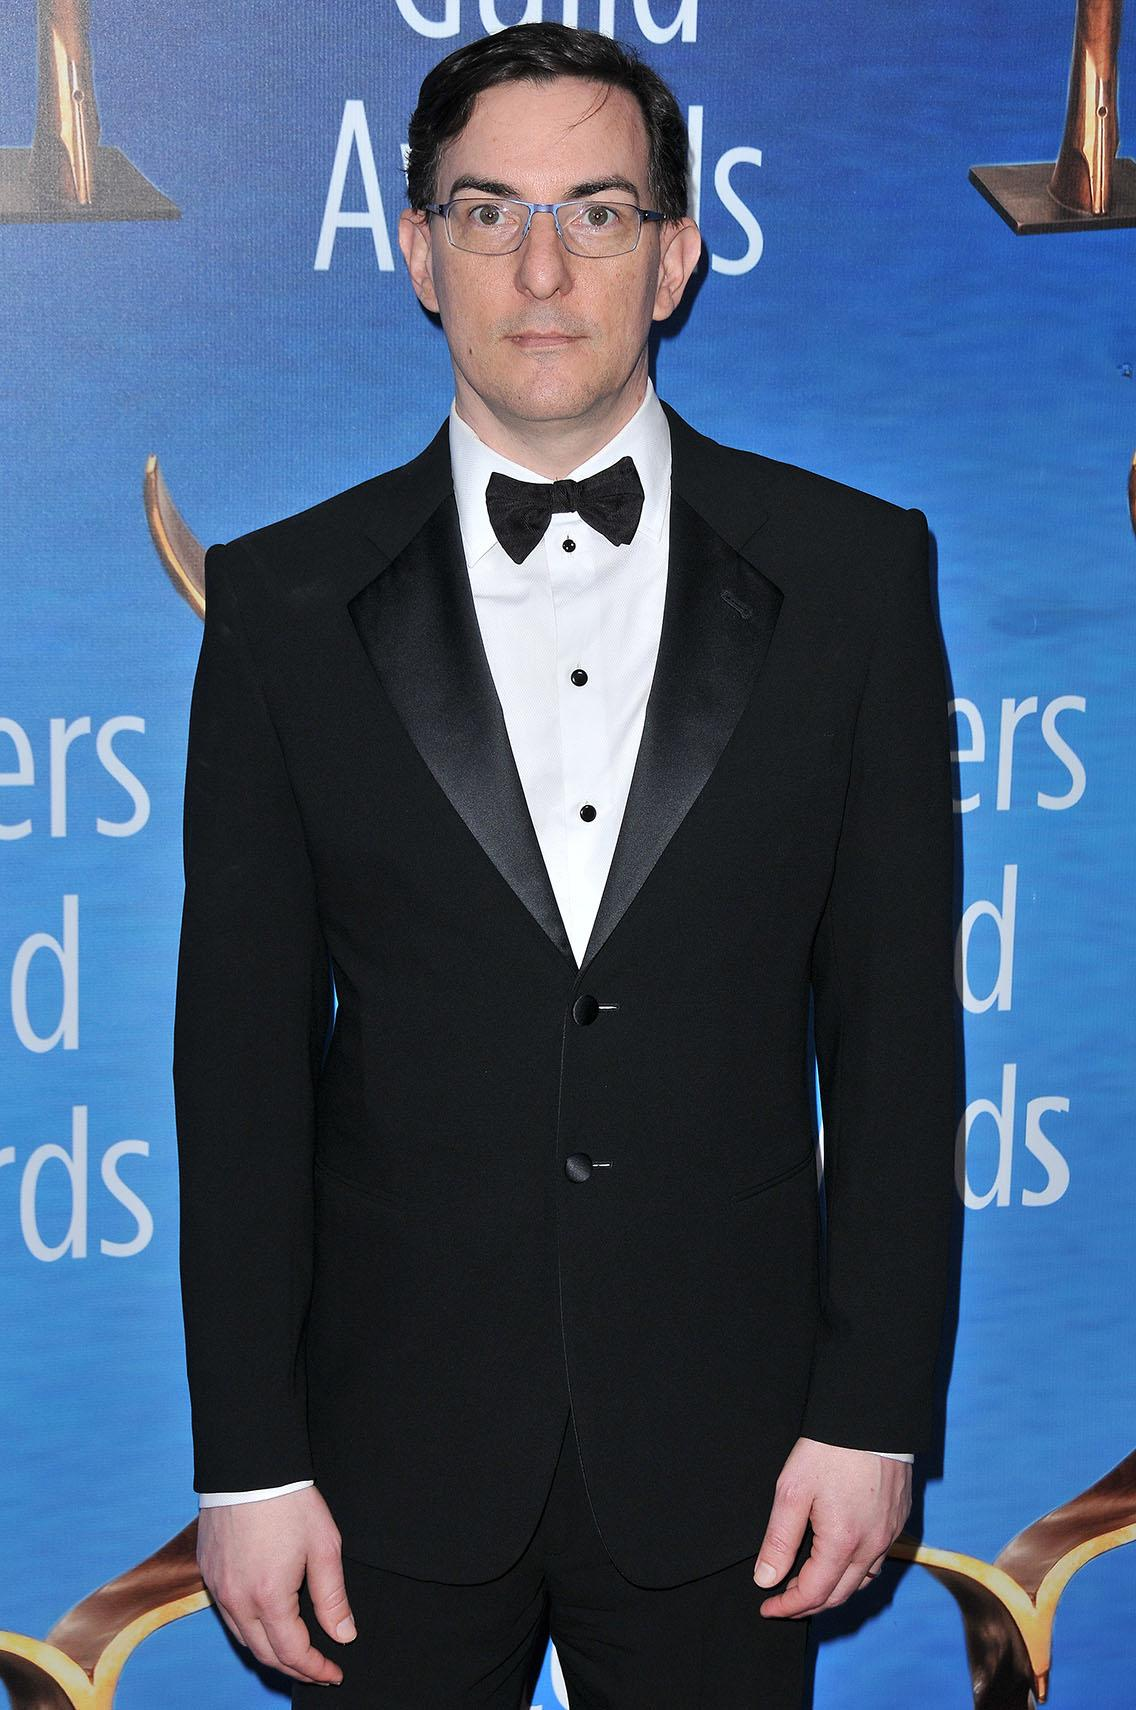 Eric Heisserer arrives at the Writers Guild Awards L.A. Ceremony held at The Beverly Hilton in Beverly Hills, Calif., on February 19, 2017. (Sthanlee B. Mirador/Sipa USA/TNS)